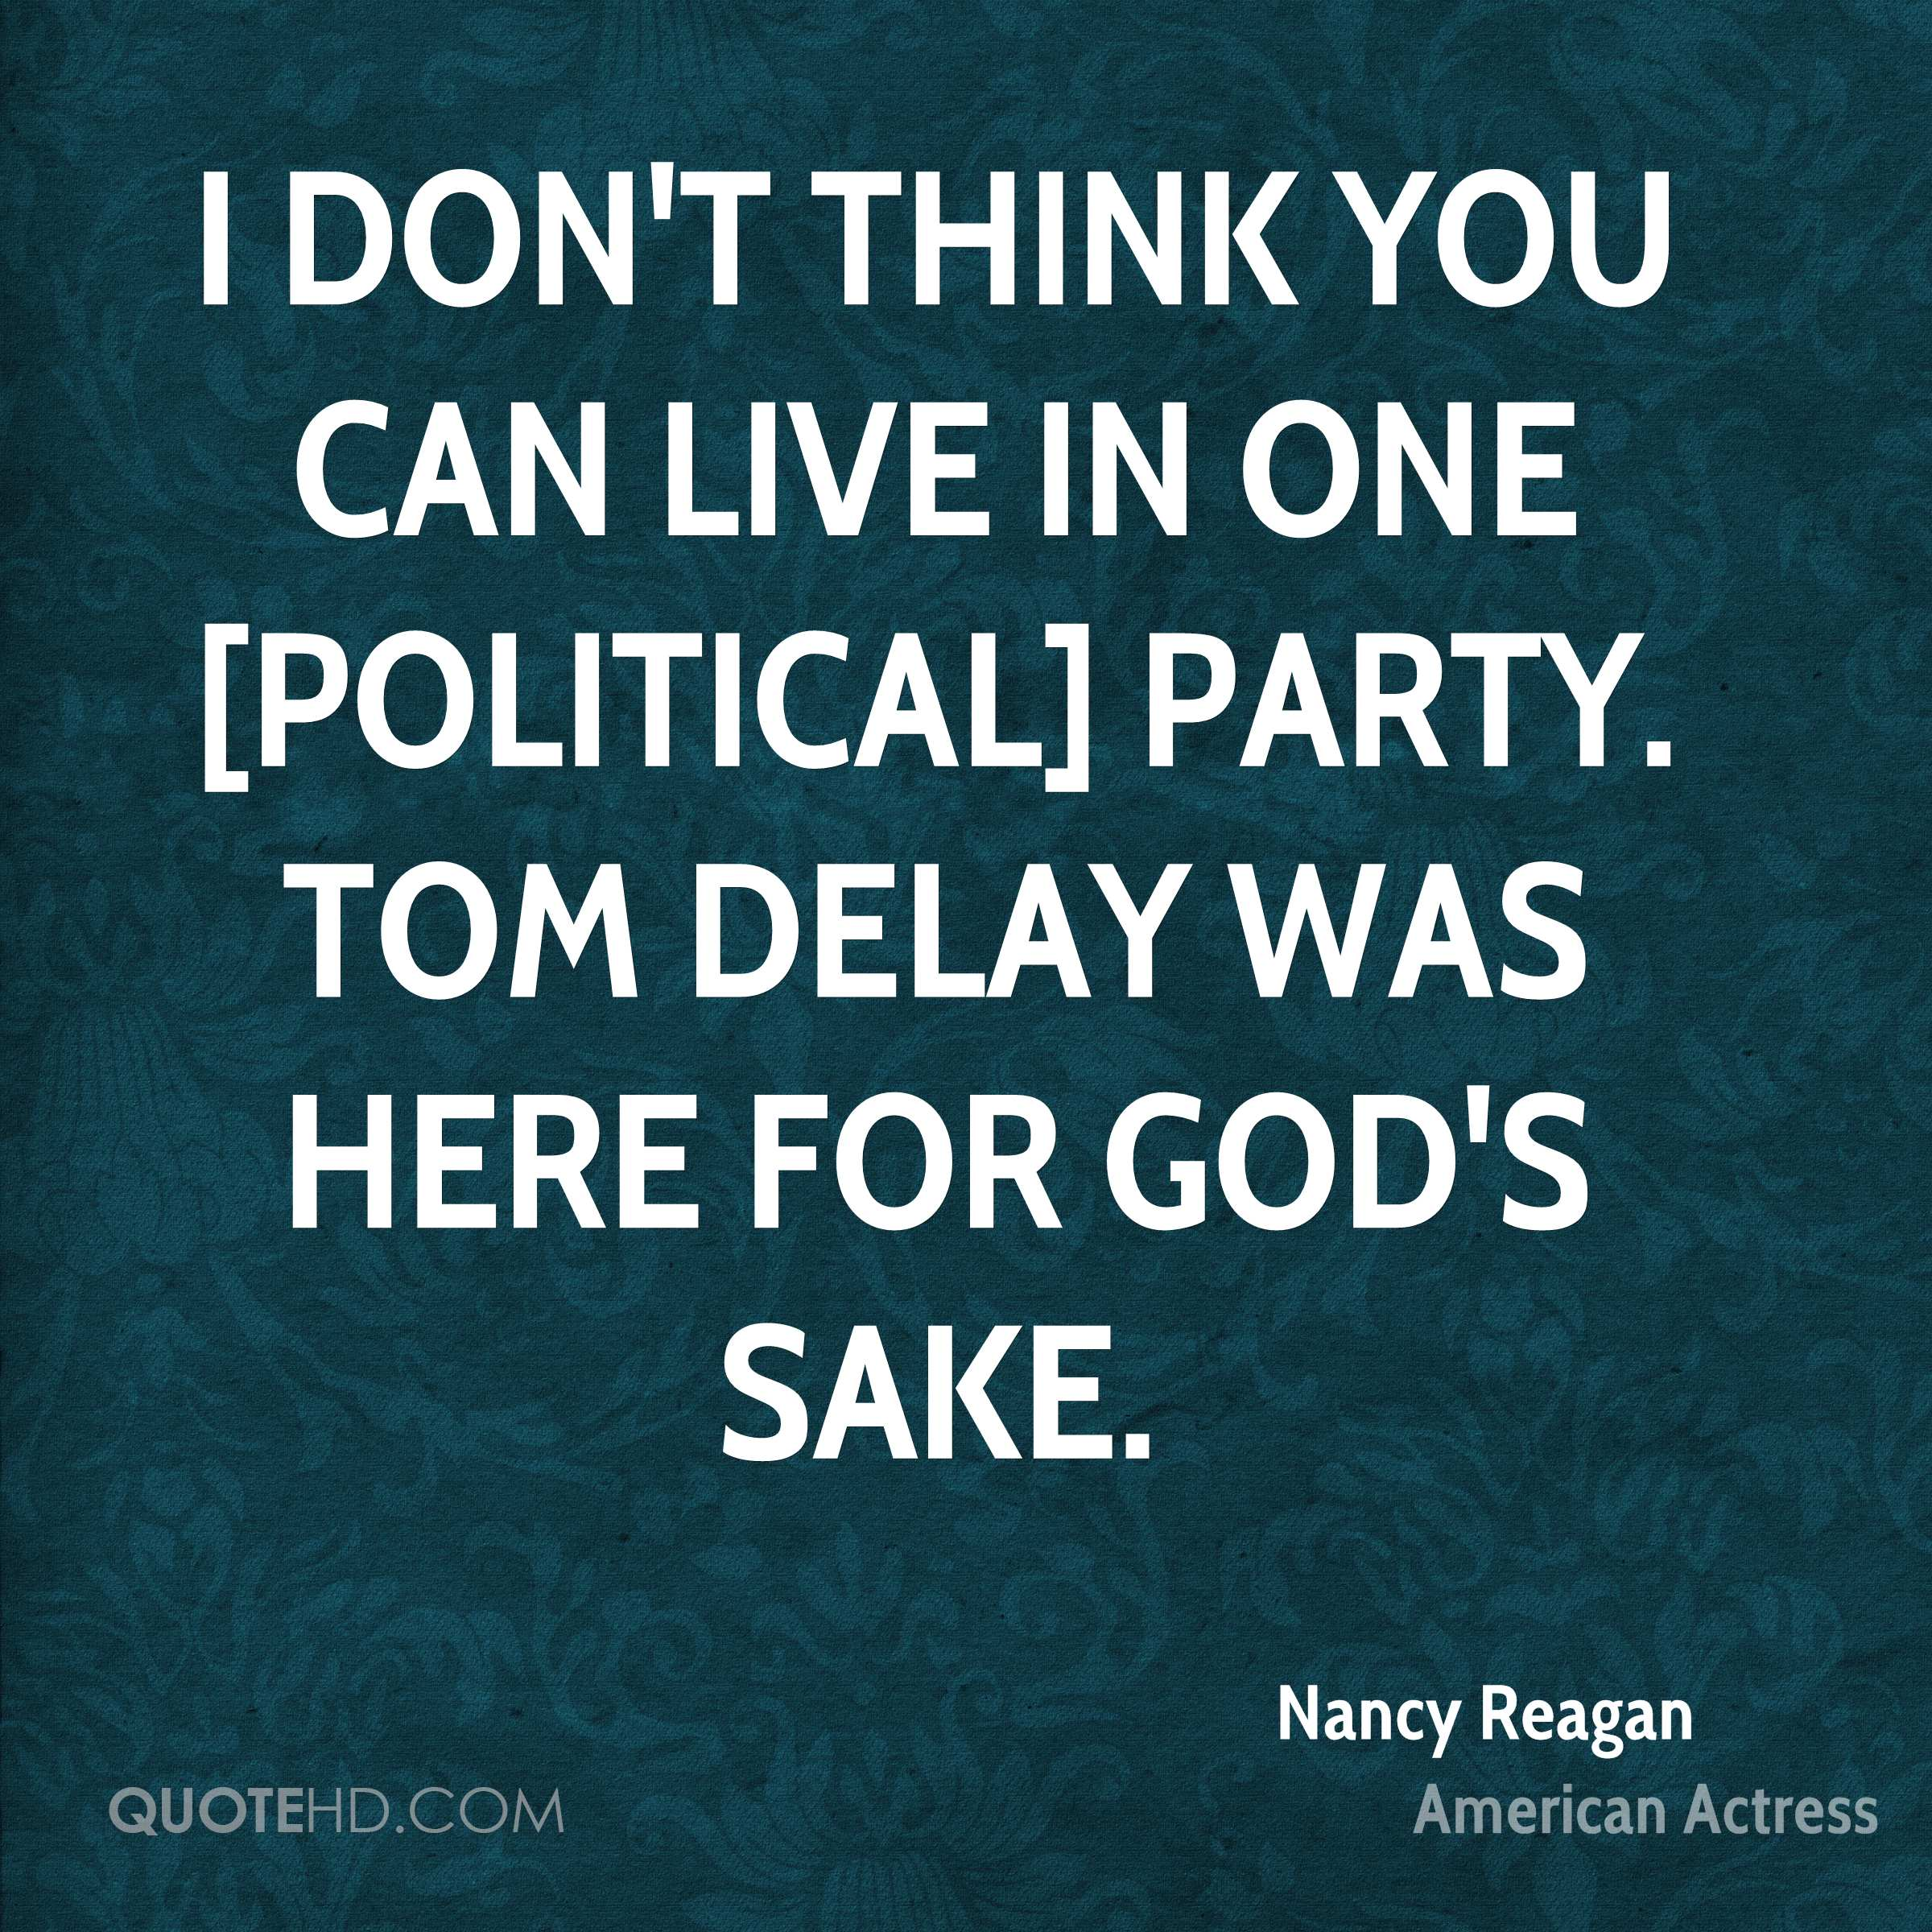 I don't think you can live in one [political] party. Tom DeLay was here for God's sake.